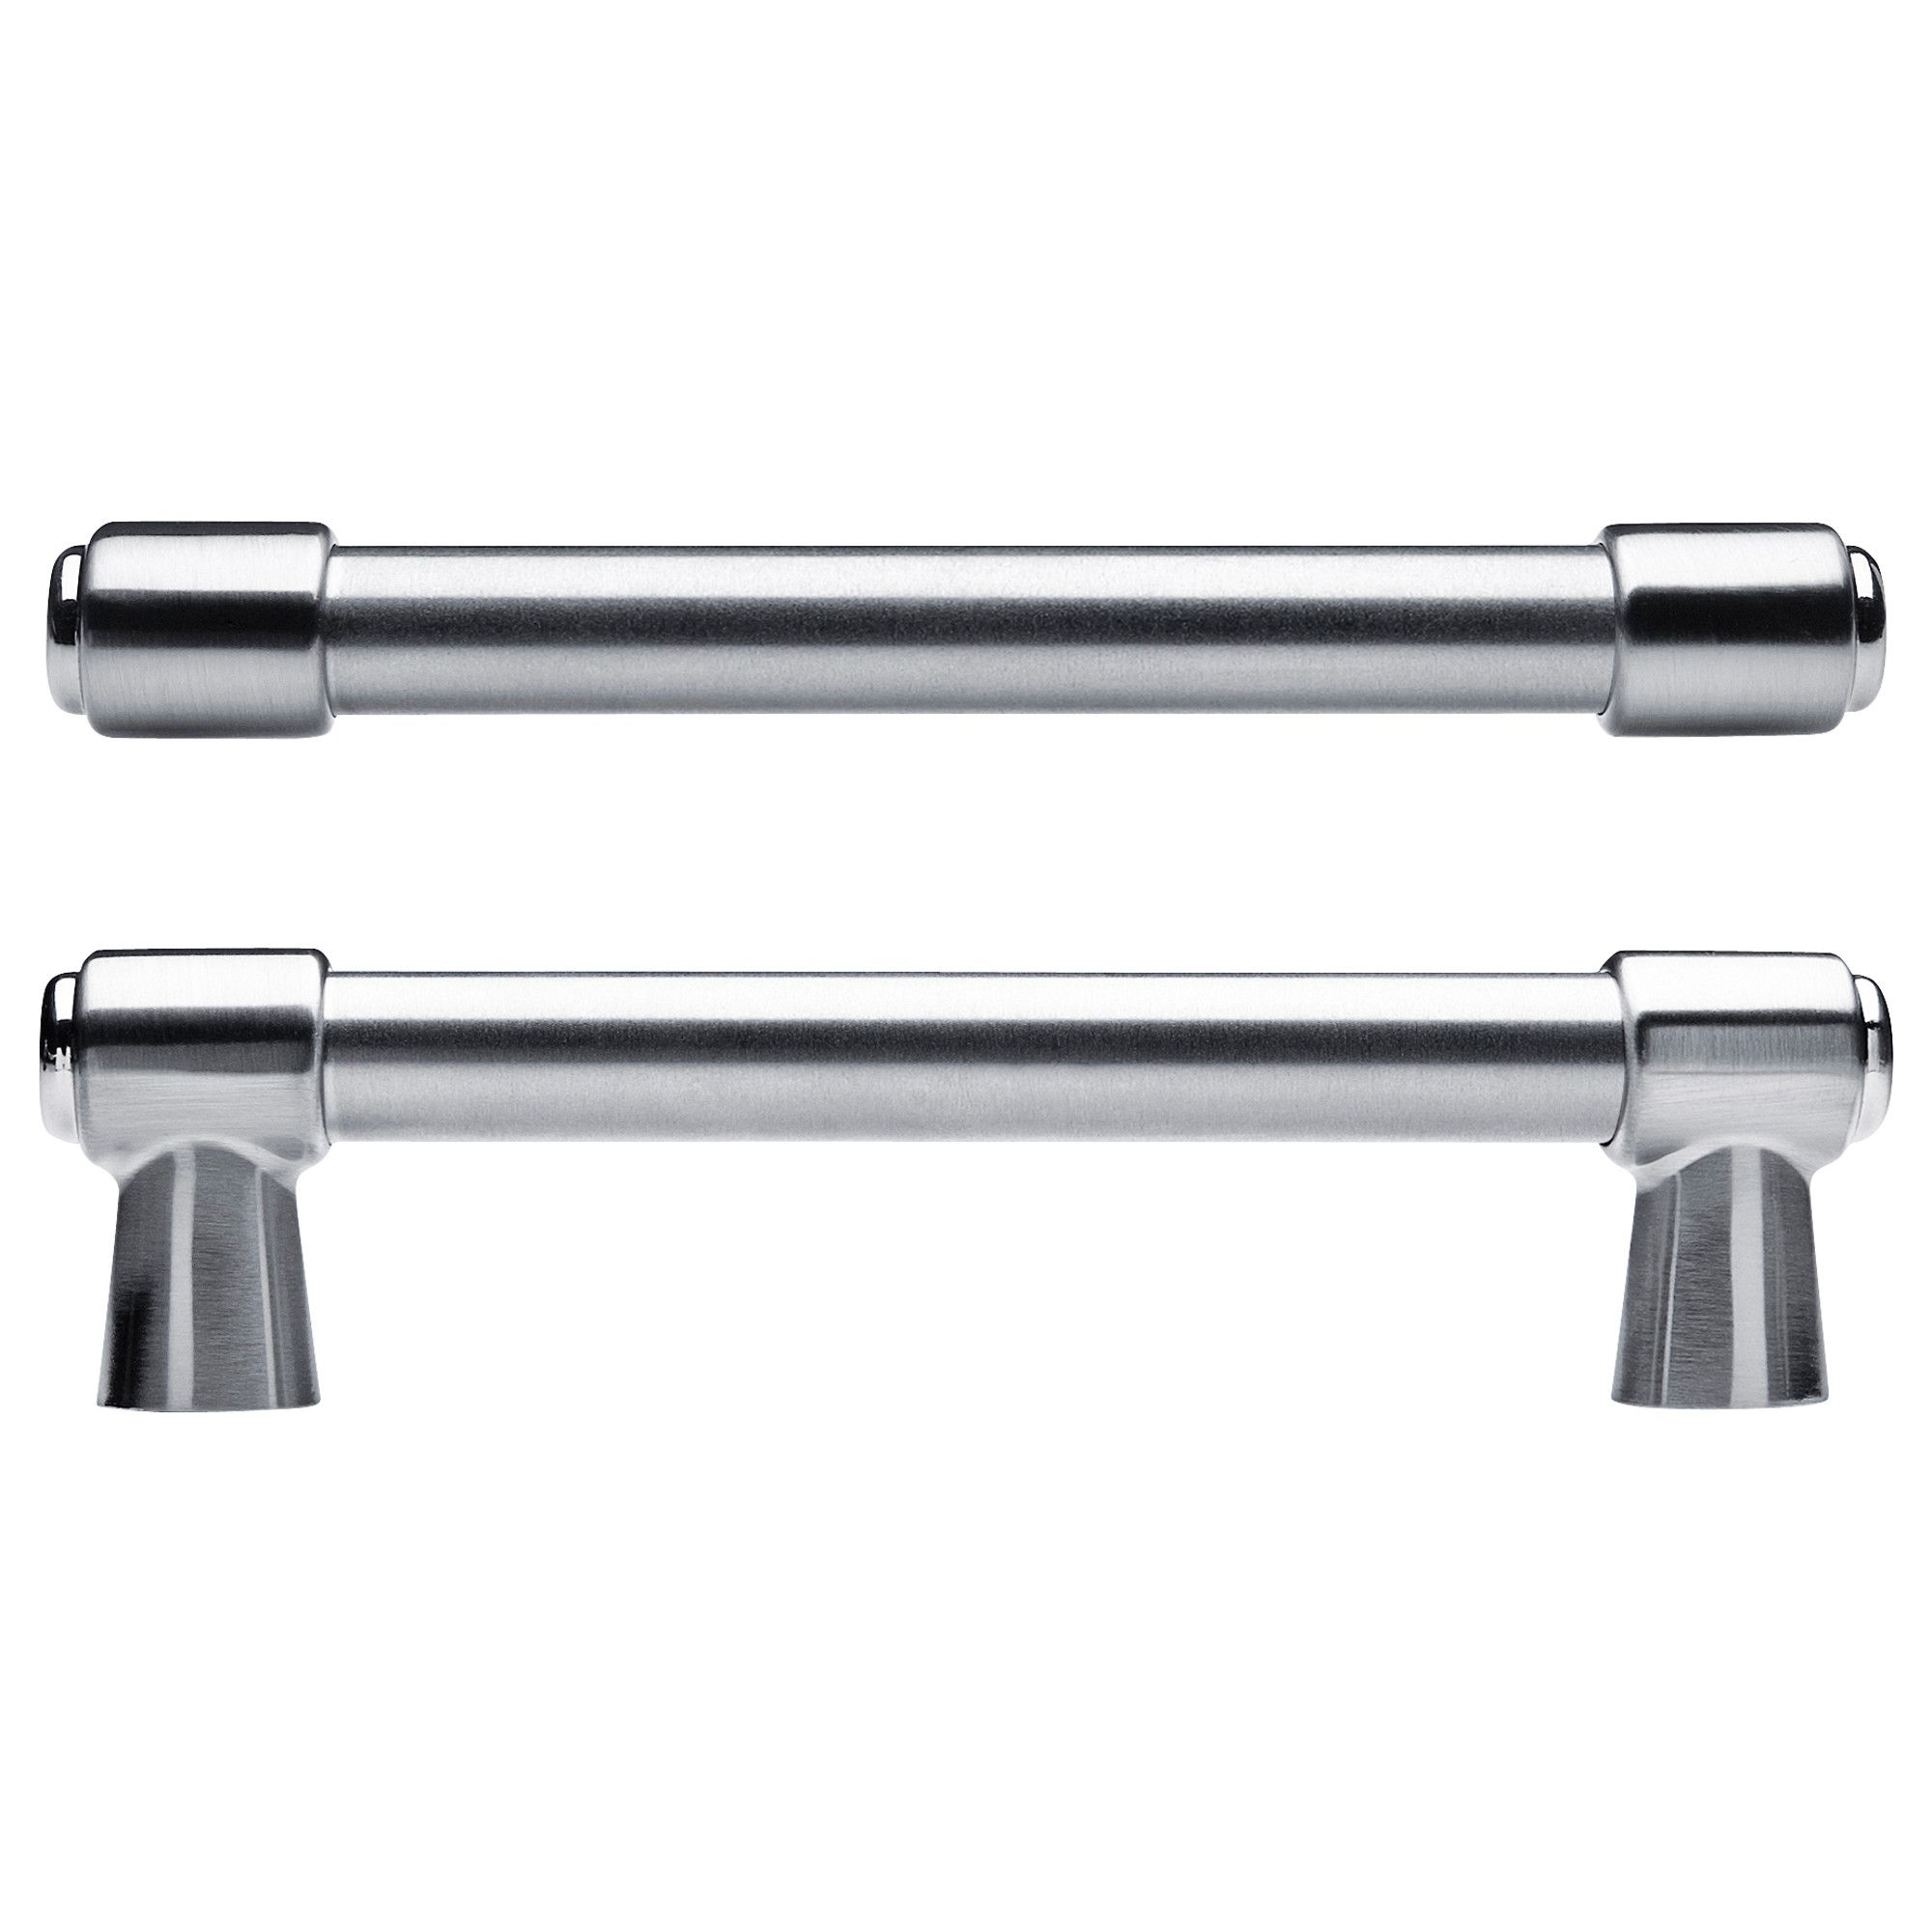 ikea varnhem handle 154 mm these nickel plated handles are